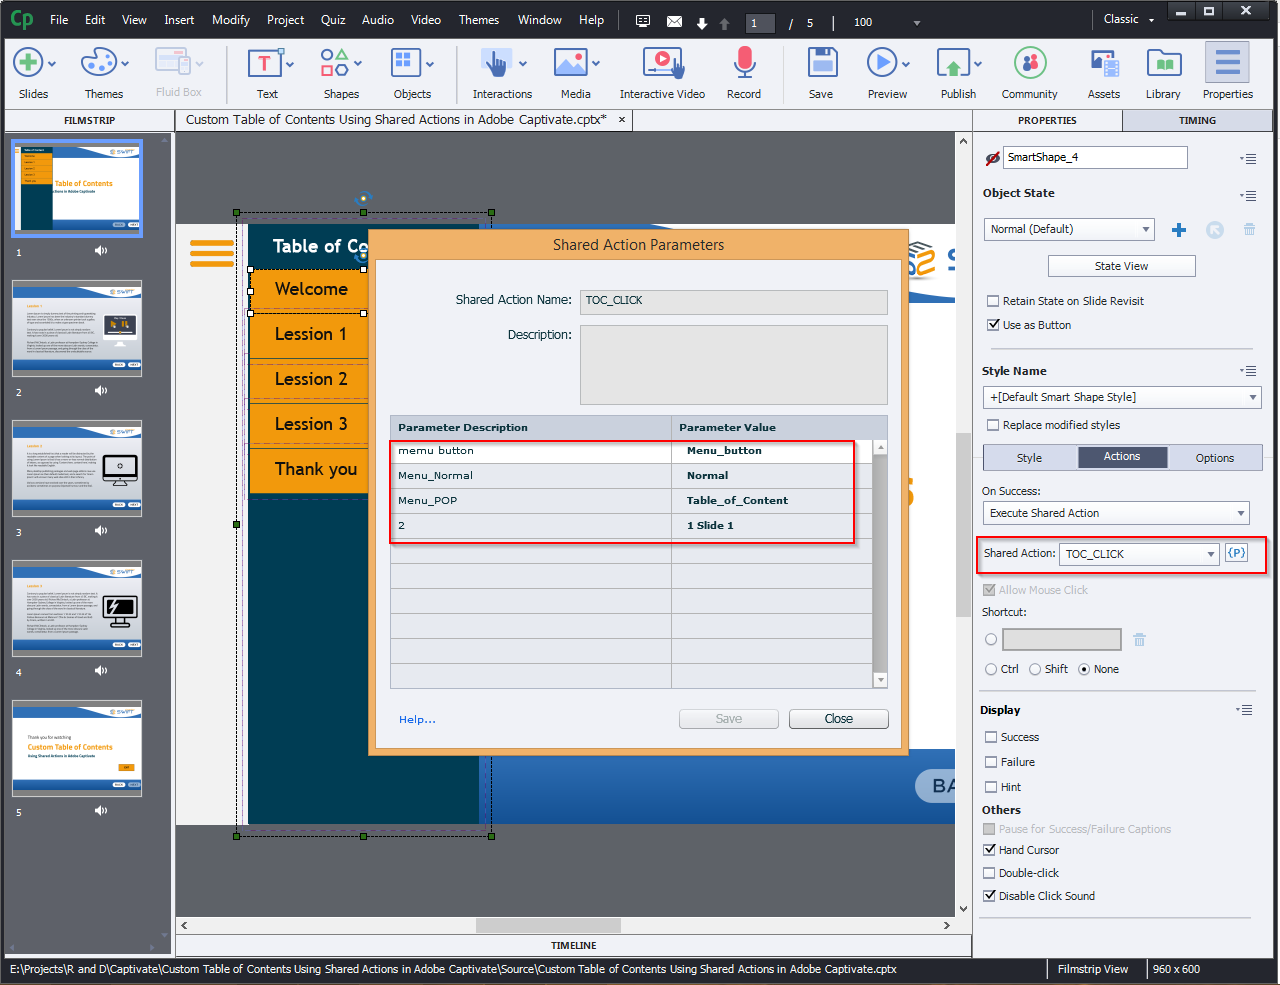 Contents Using Shared Actions in Adobe Captivate 2019 10a